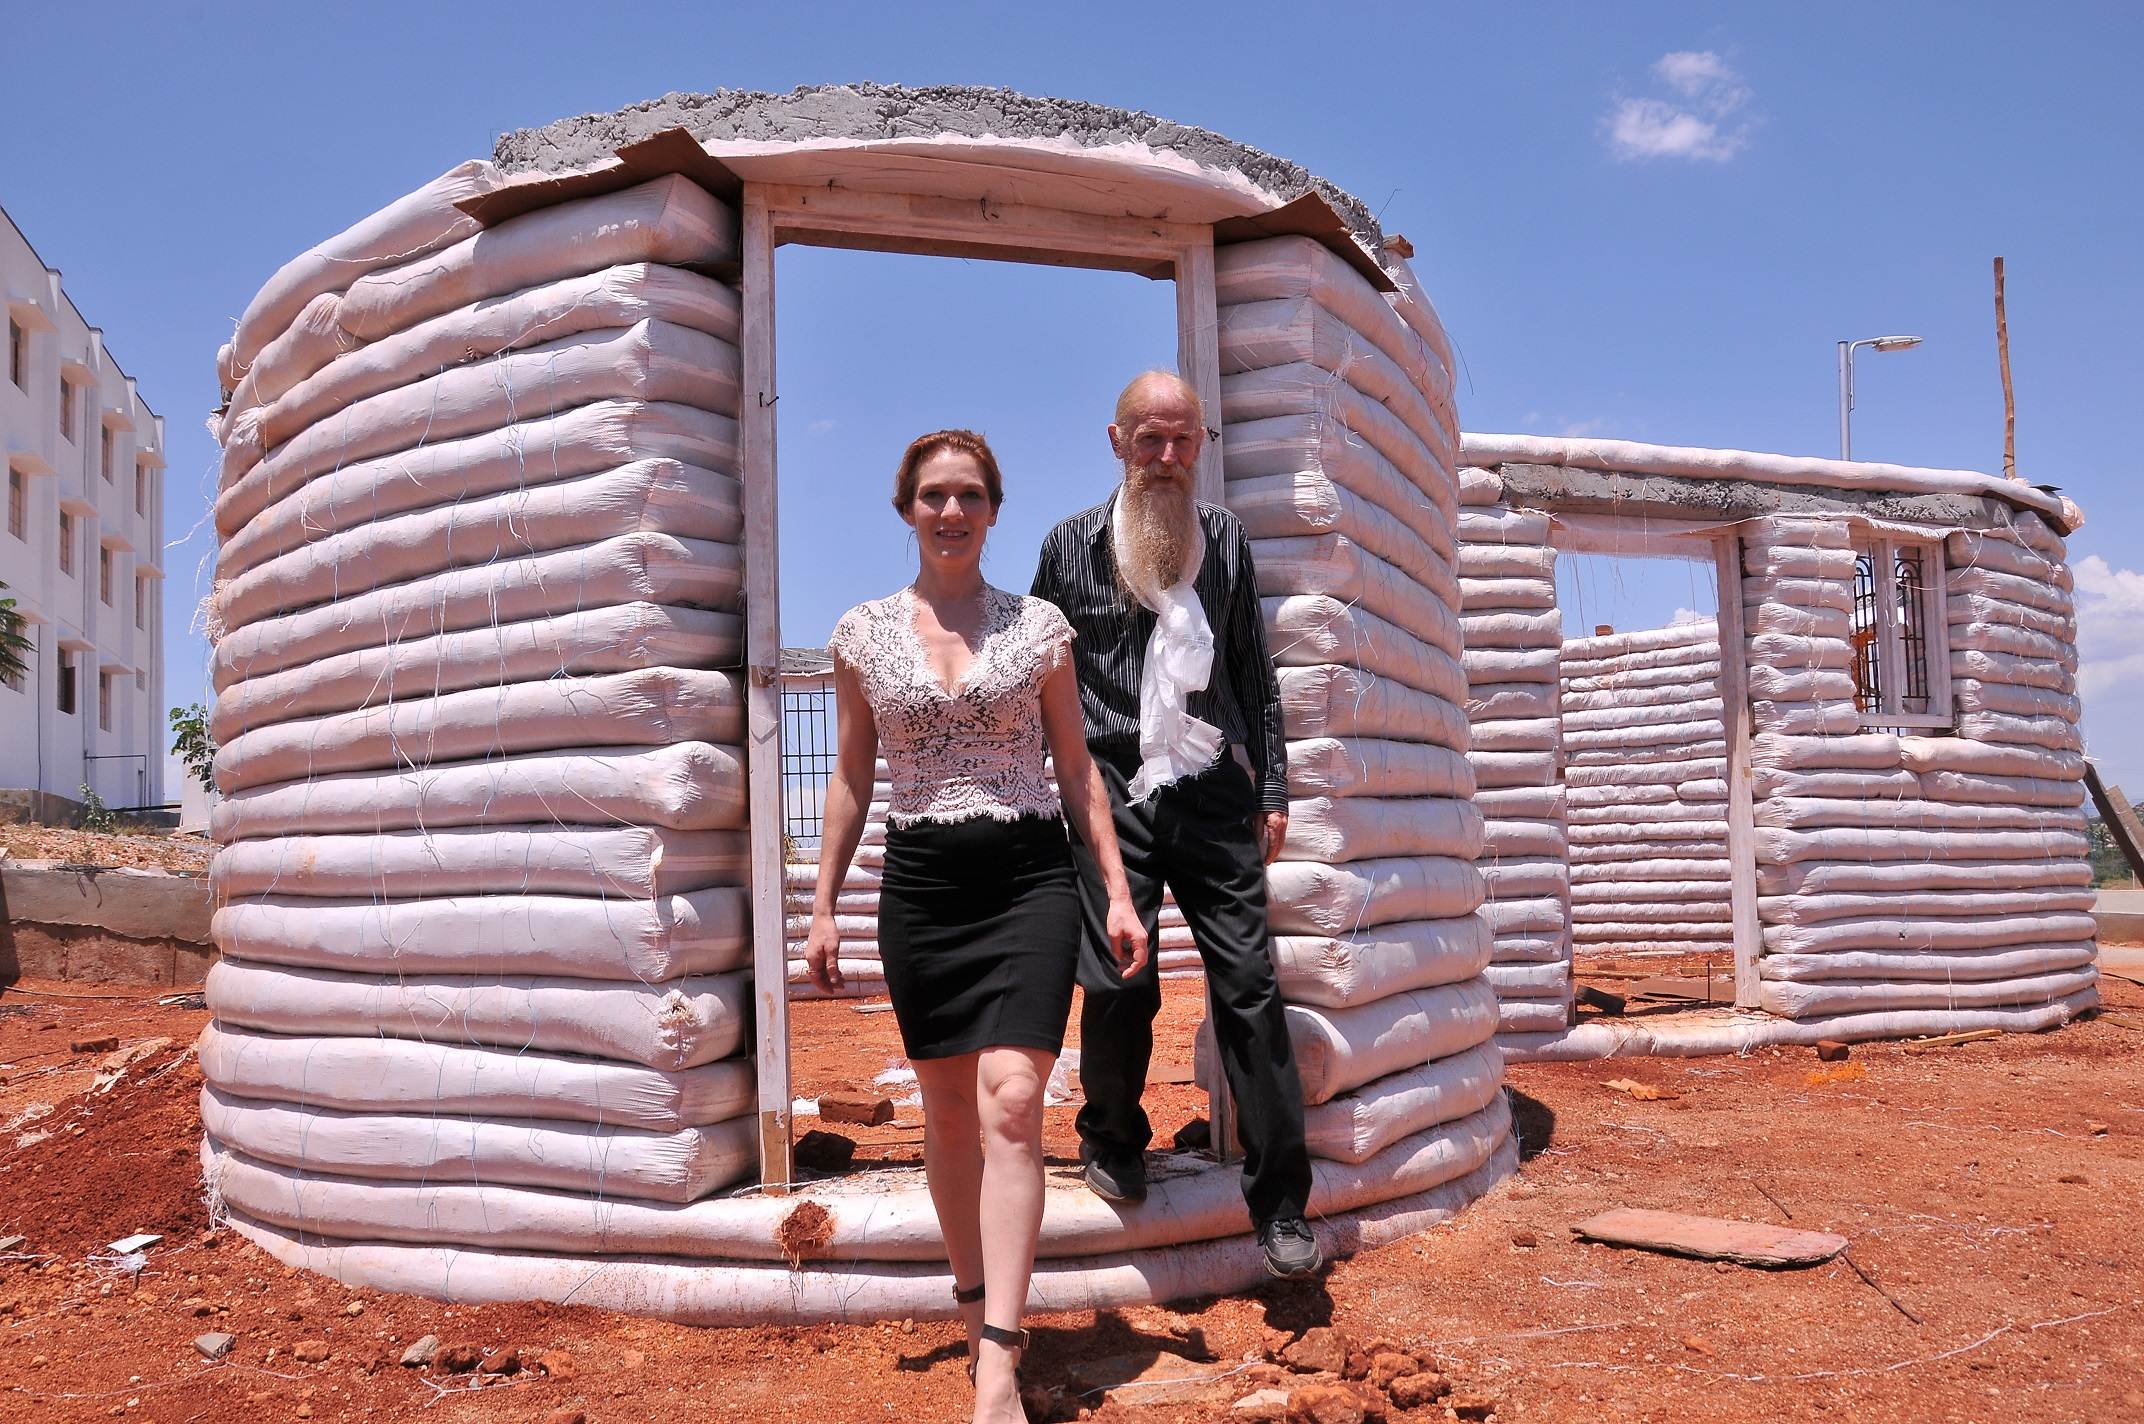 Kateryna Zemskova and Dr. Owen Geiger at the model Earthbag building, Anna University Campus, Madurai